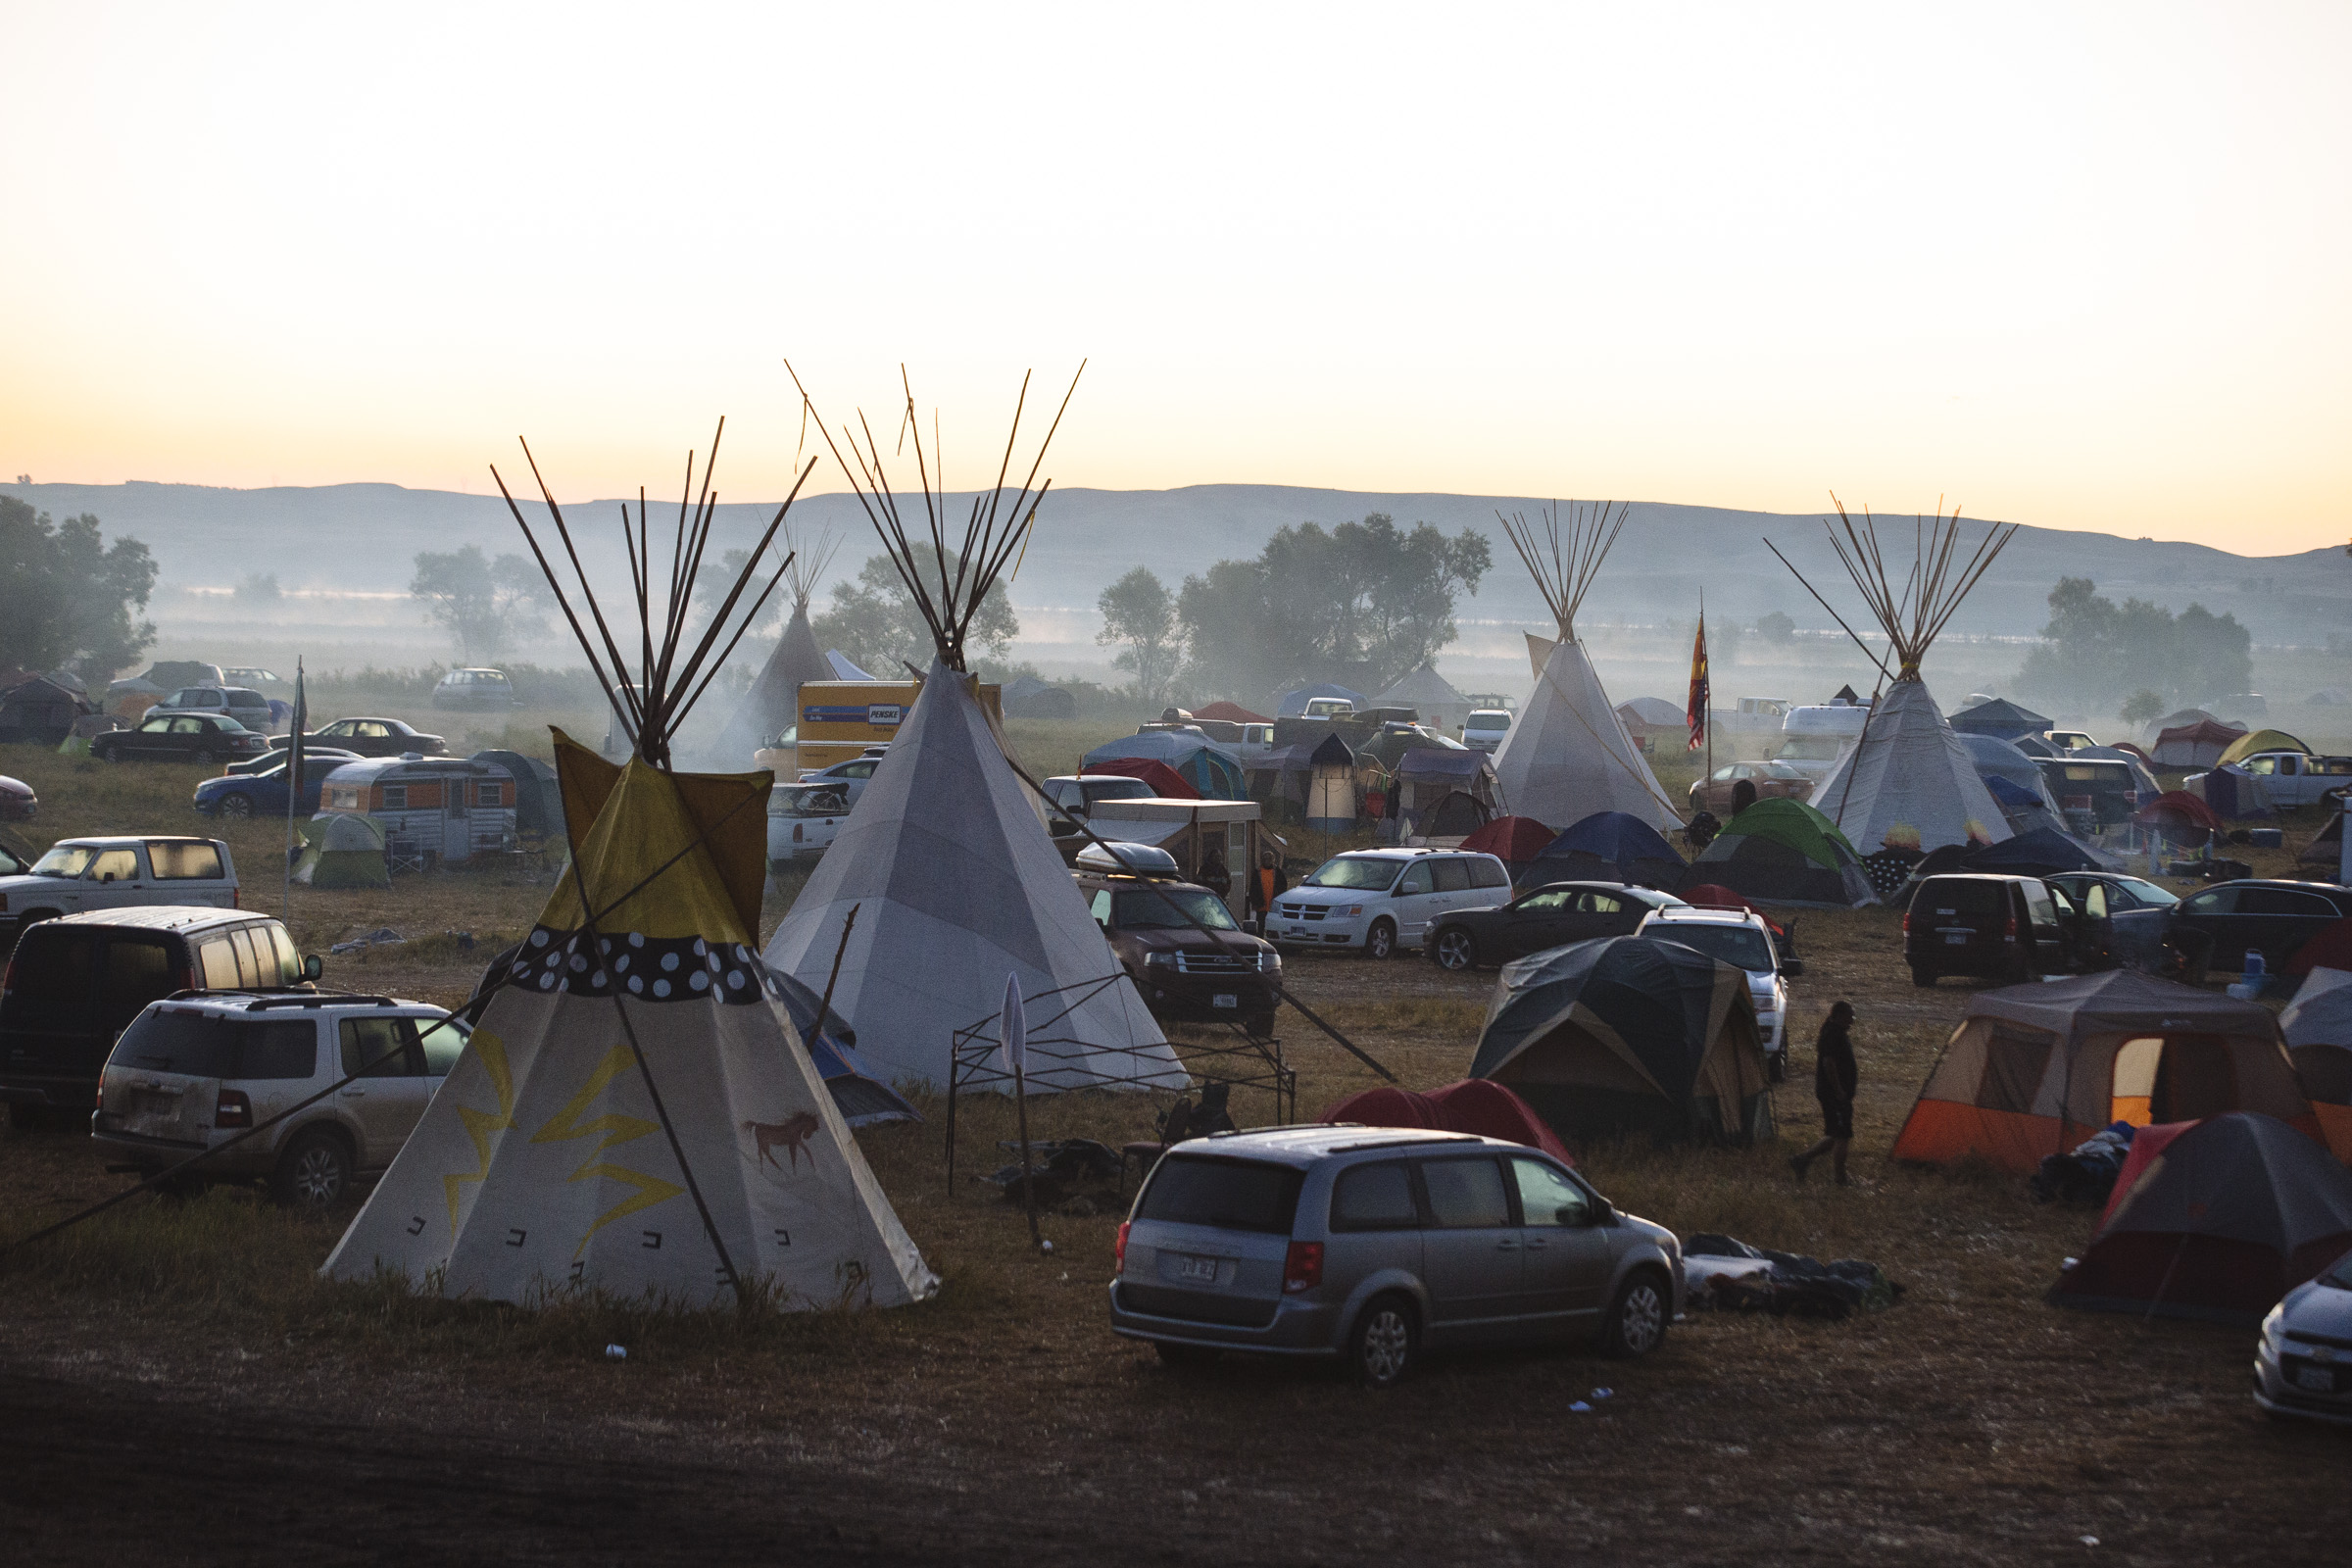 A light fog is seen on the Cannon Ball River as the sun rises over the Oceti Sakowin Camp on the outskirts of the Standing Rock Reservation on Saturday, Sept. 10, 2016. Native Americans from over 280 tribes have gathered to protest the construction of the Dakota Access Pipeline through the Missouri River and over sacred burial sites. (Photo by Angus Mordant/Groundtruth)